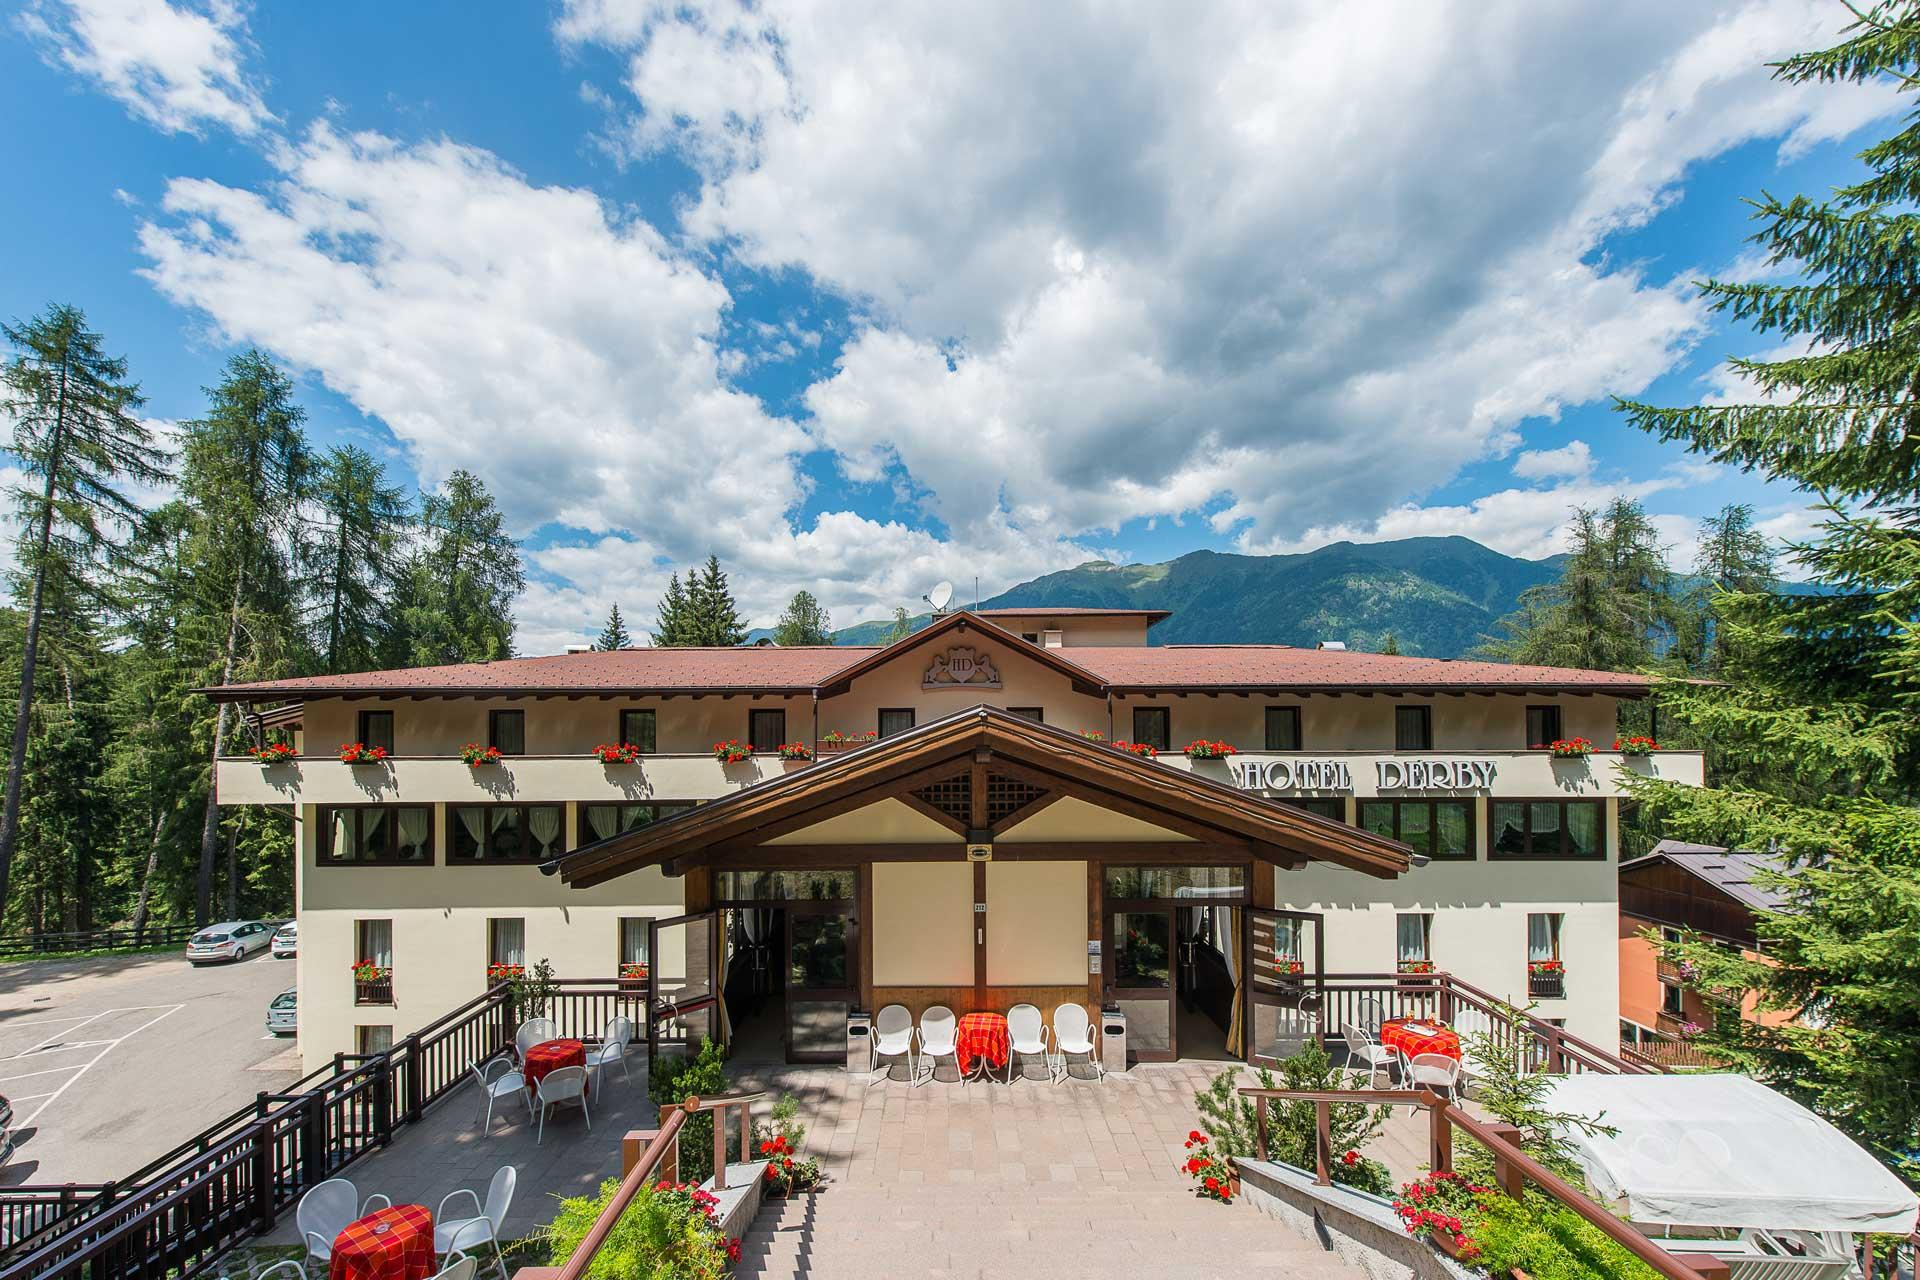 Hotel hotel derby dimaro folgarida val di sole hotel 3 for Derby hotels